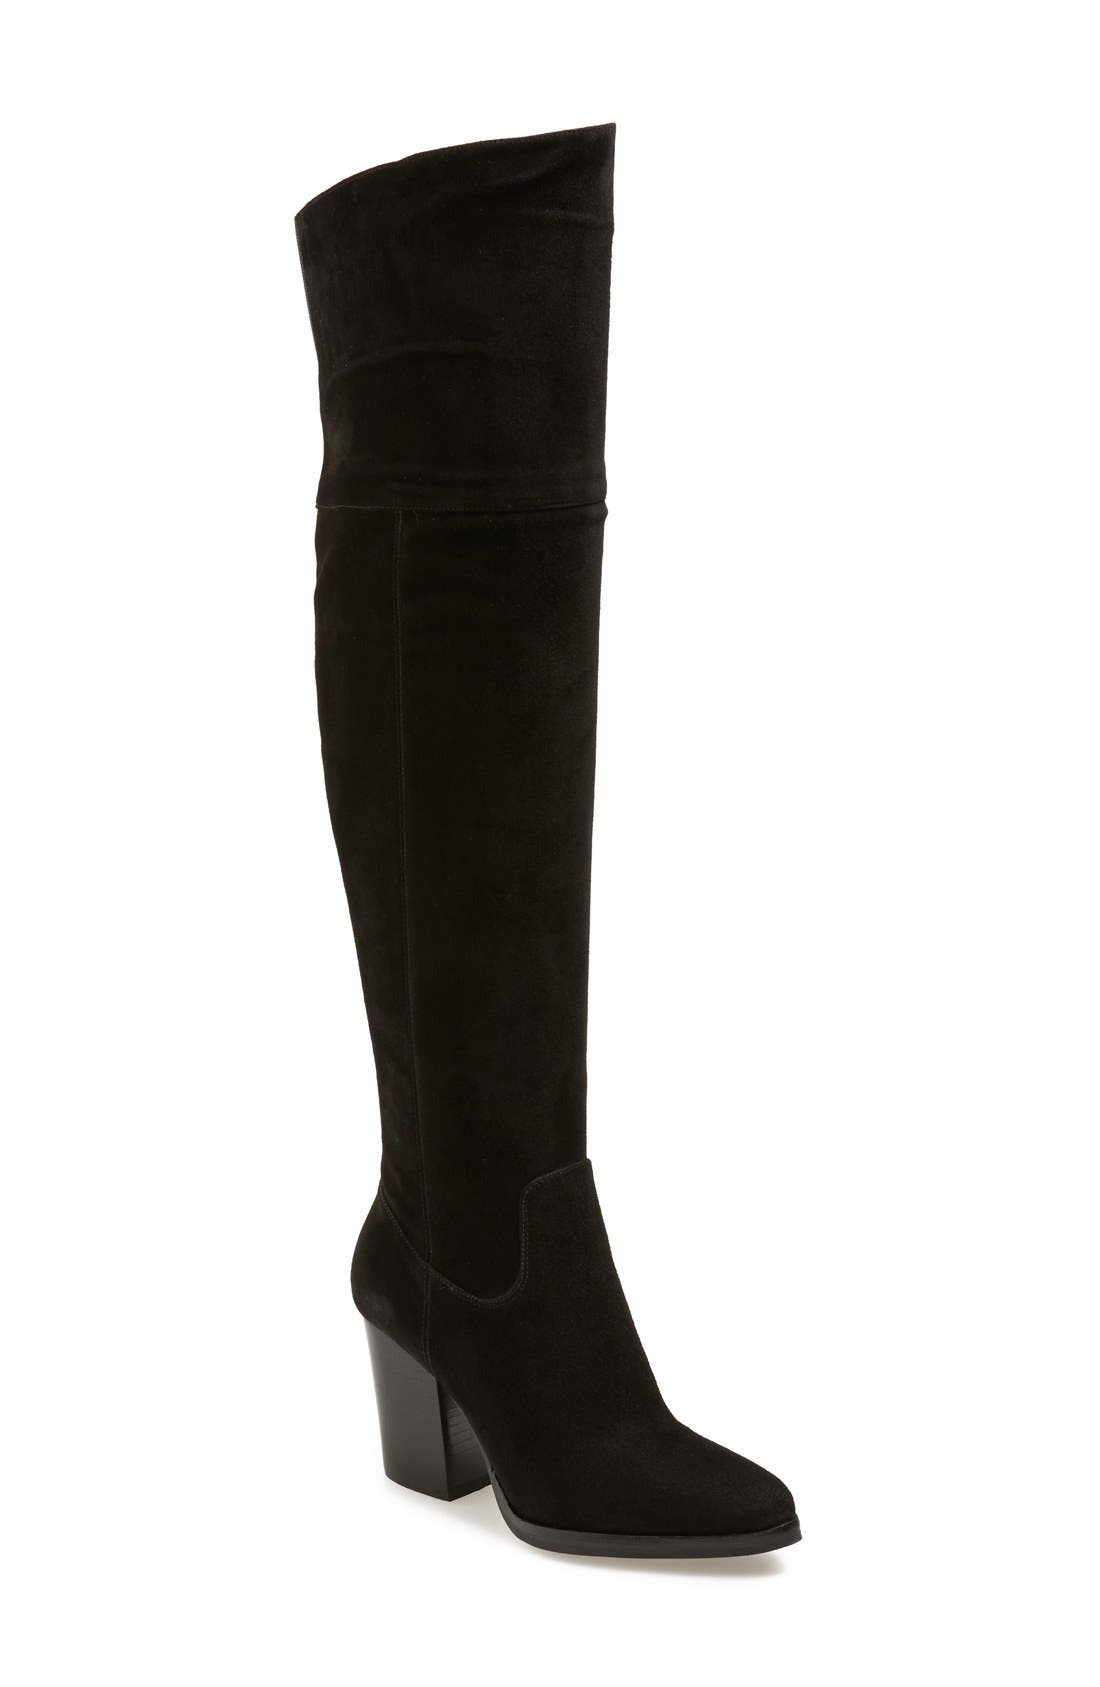 'Alana' Over the Knee Boot,                             Main thumbnail 1, color,                             Black Suede